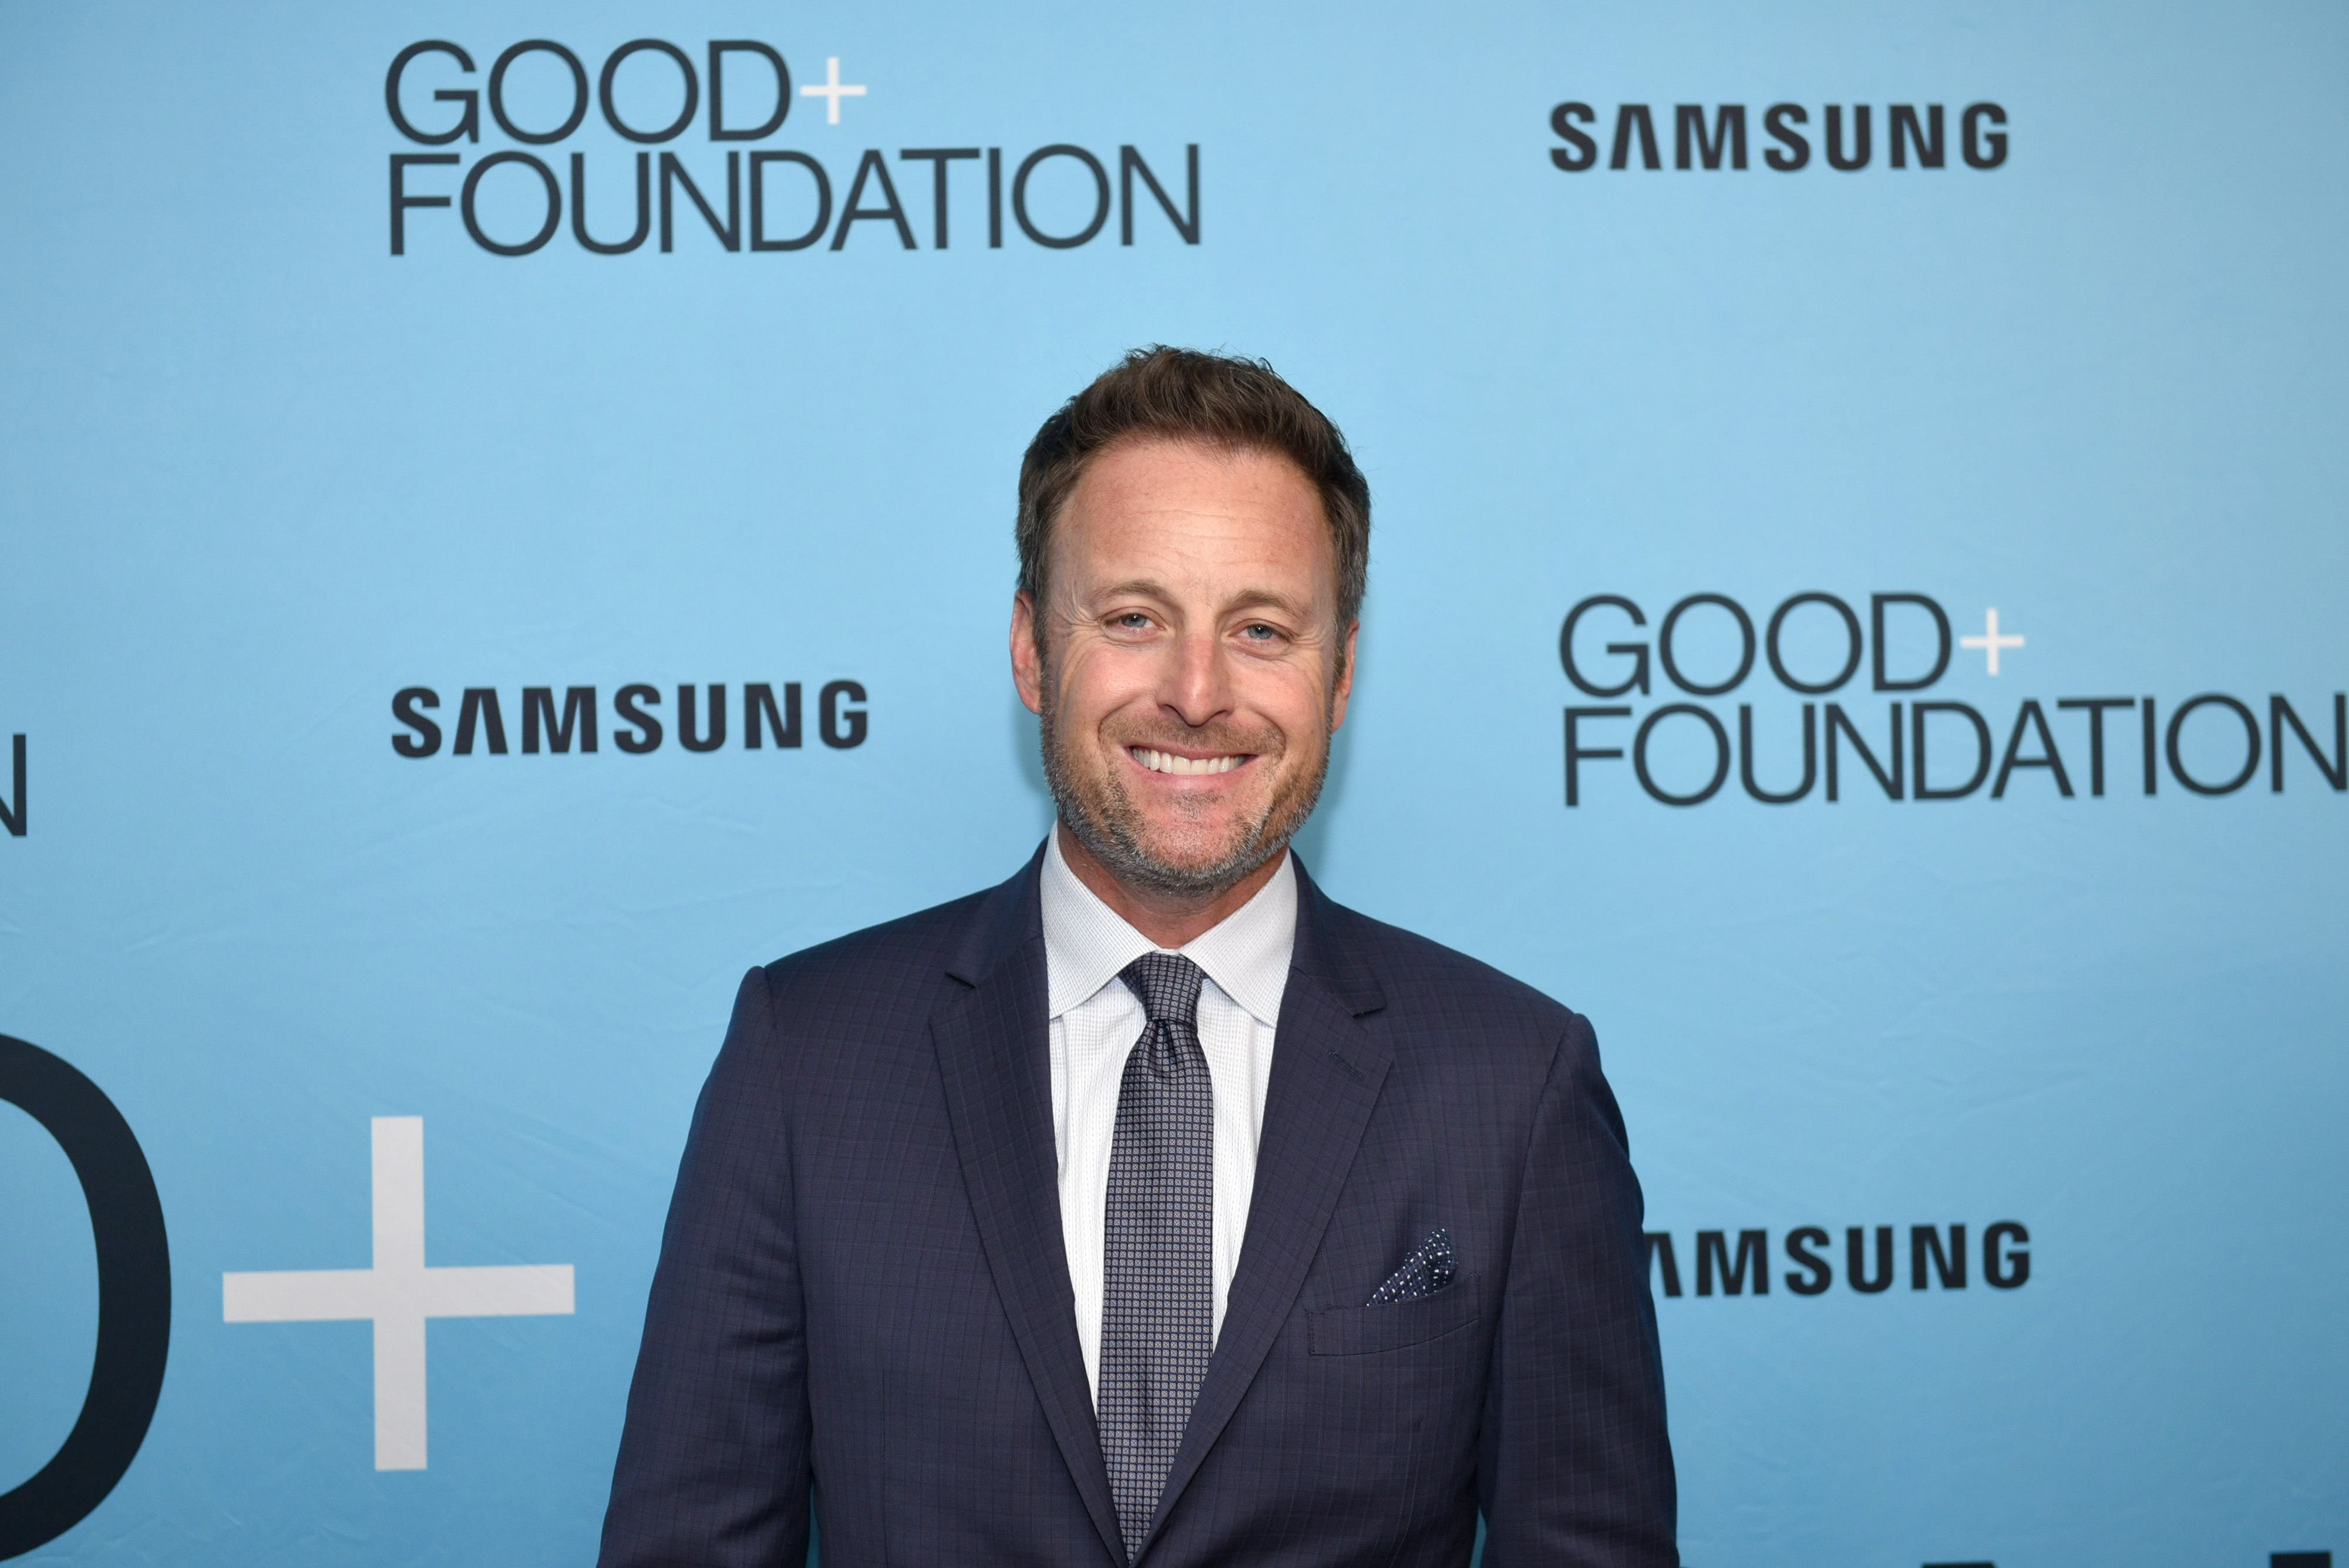 Chris Harrison at the 2018 GOOD+ Foundation's Evening of Comedy & Music Benefit in 2018 in New York City | Source: Getty Images